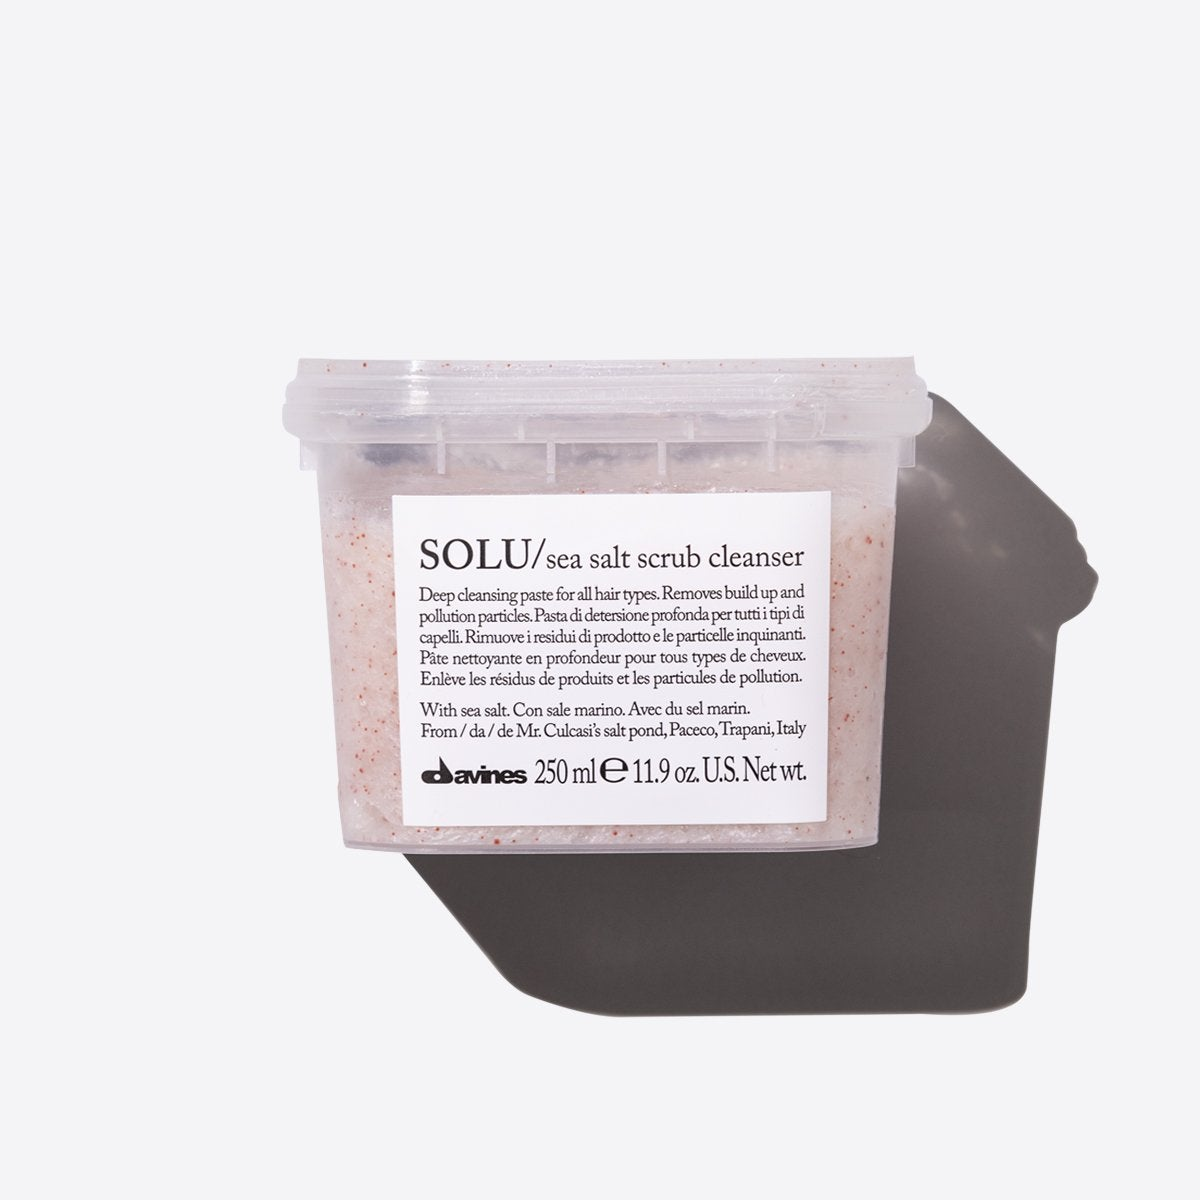 SOLU Sea Salt Scrub Cleanser 1  250 ml / 0 fl.oz.Davines